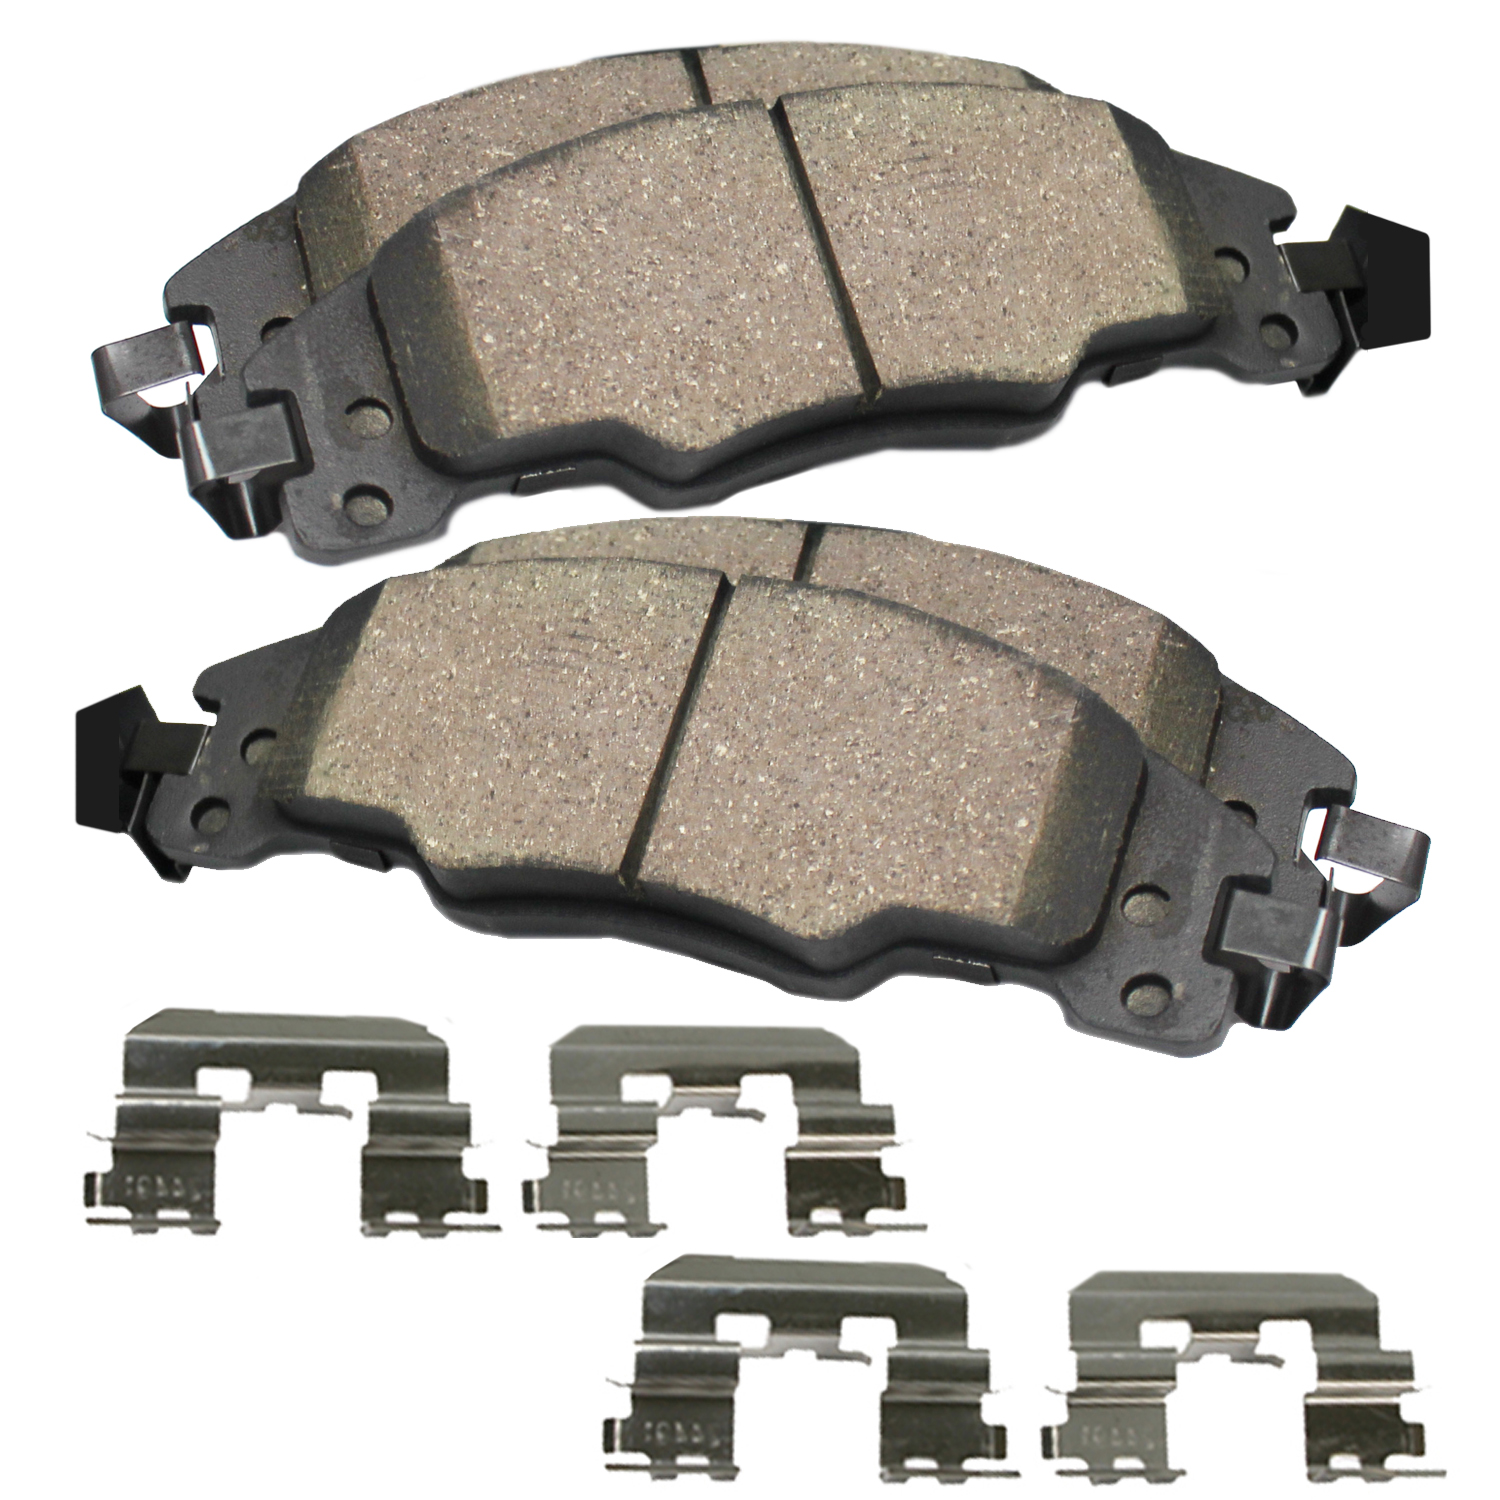 Rear Ceramic Brake Pads w/Hardware Kit for 2003 Jeep TJ/ Wrangler